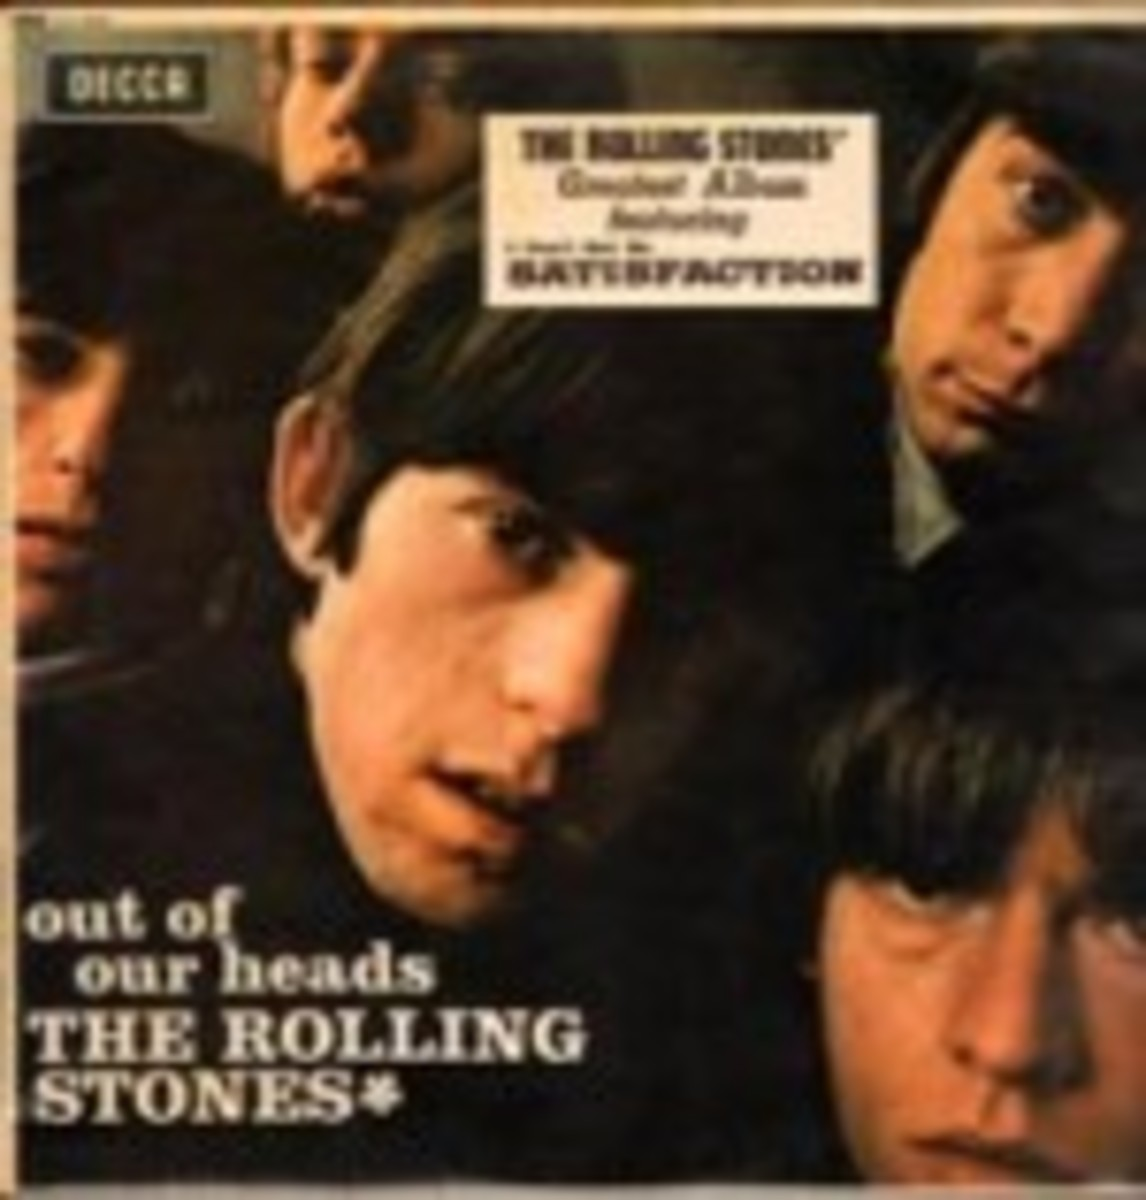 The Rolling Stones Out Of Our Heads